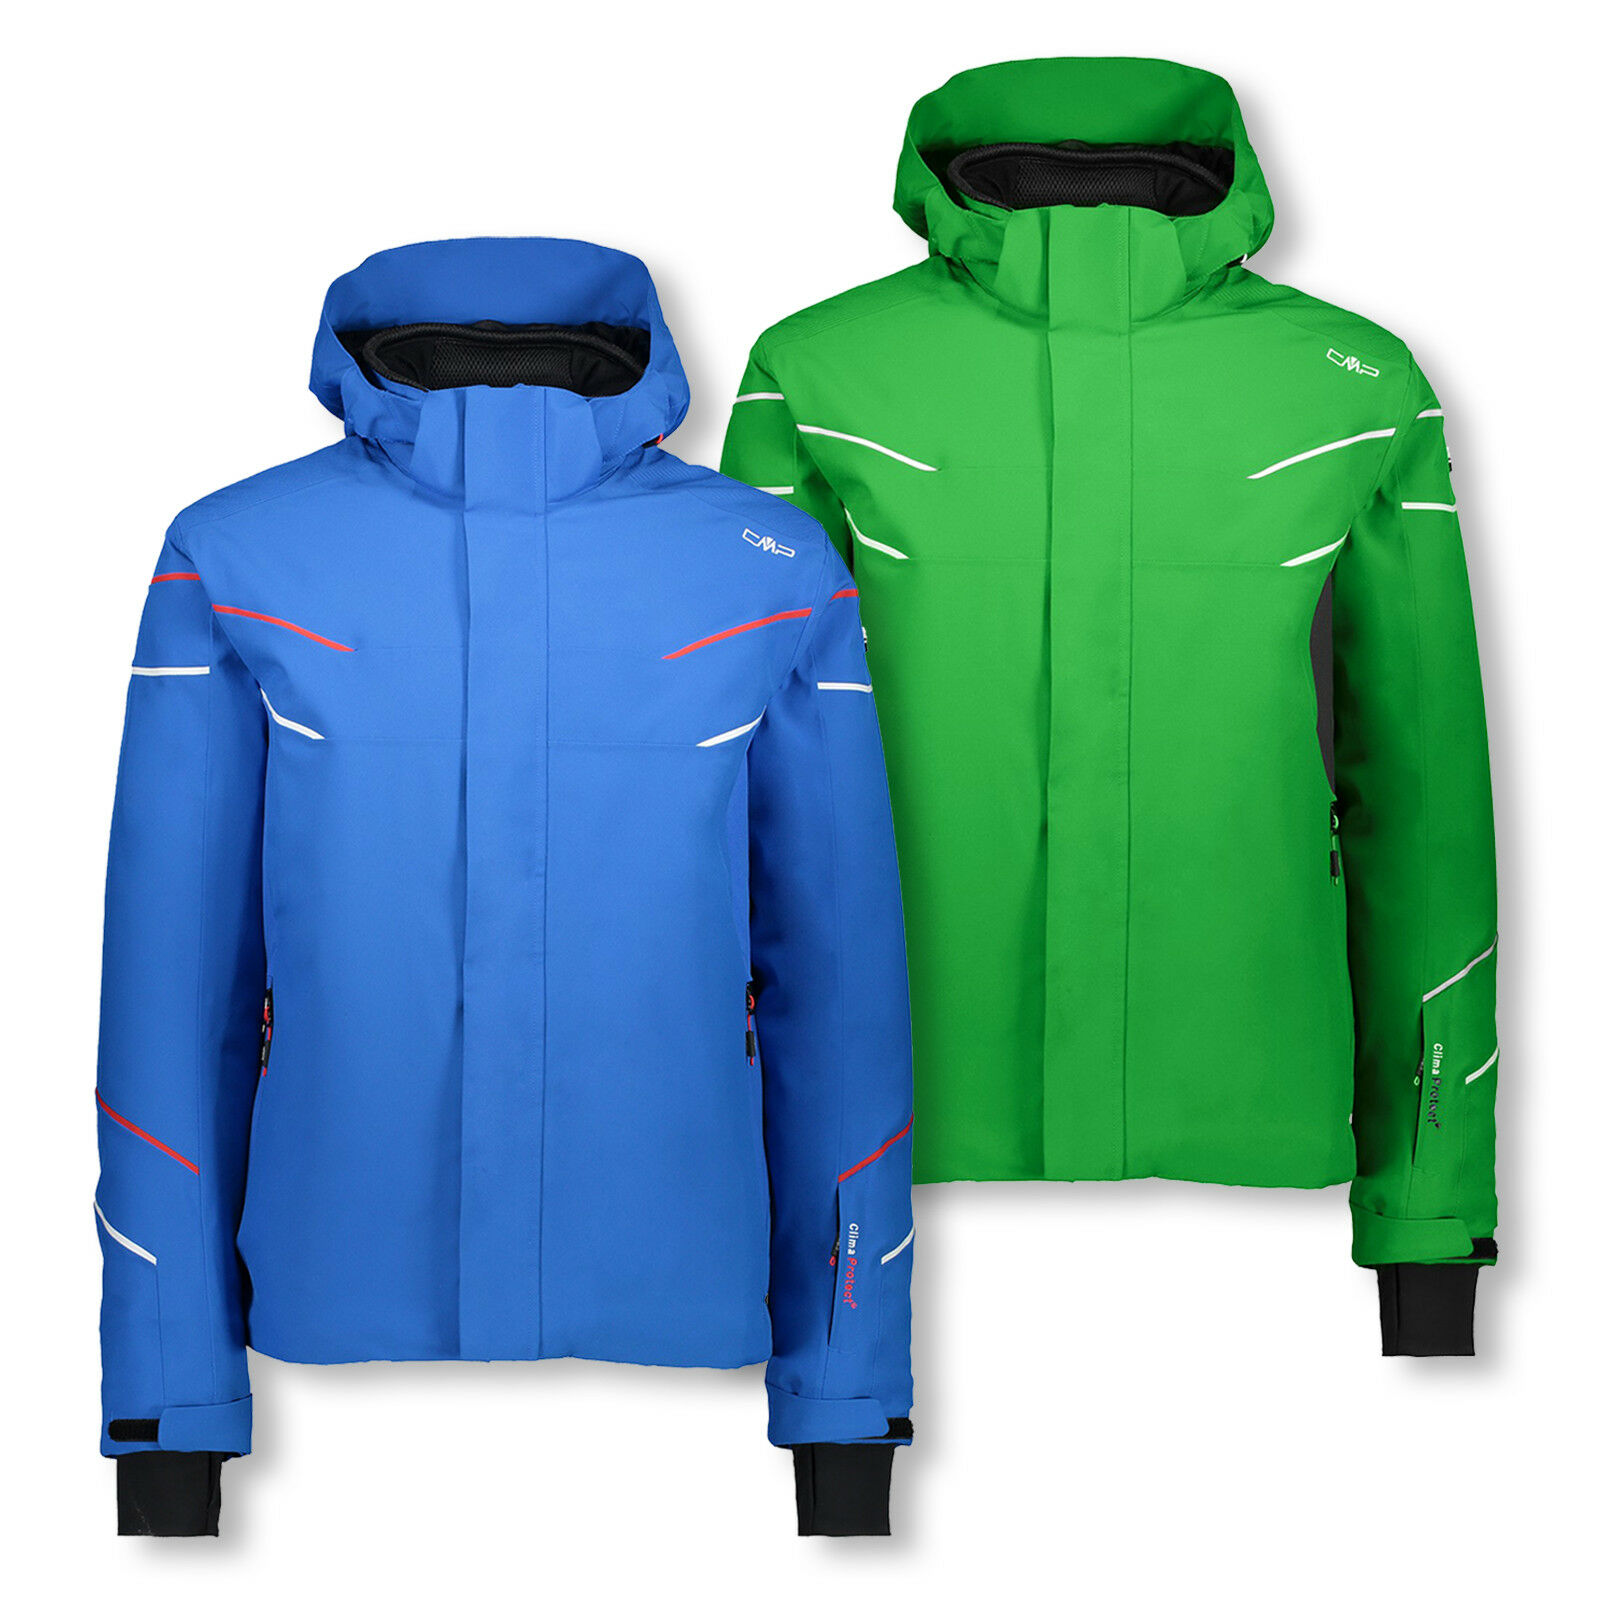 CMP Giacca Sci Uomo Giacca Invernale Giacca Cappuccio Zip Hood Jacket Coloreeee a scelta